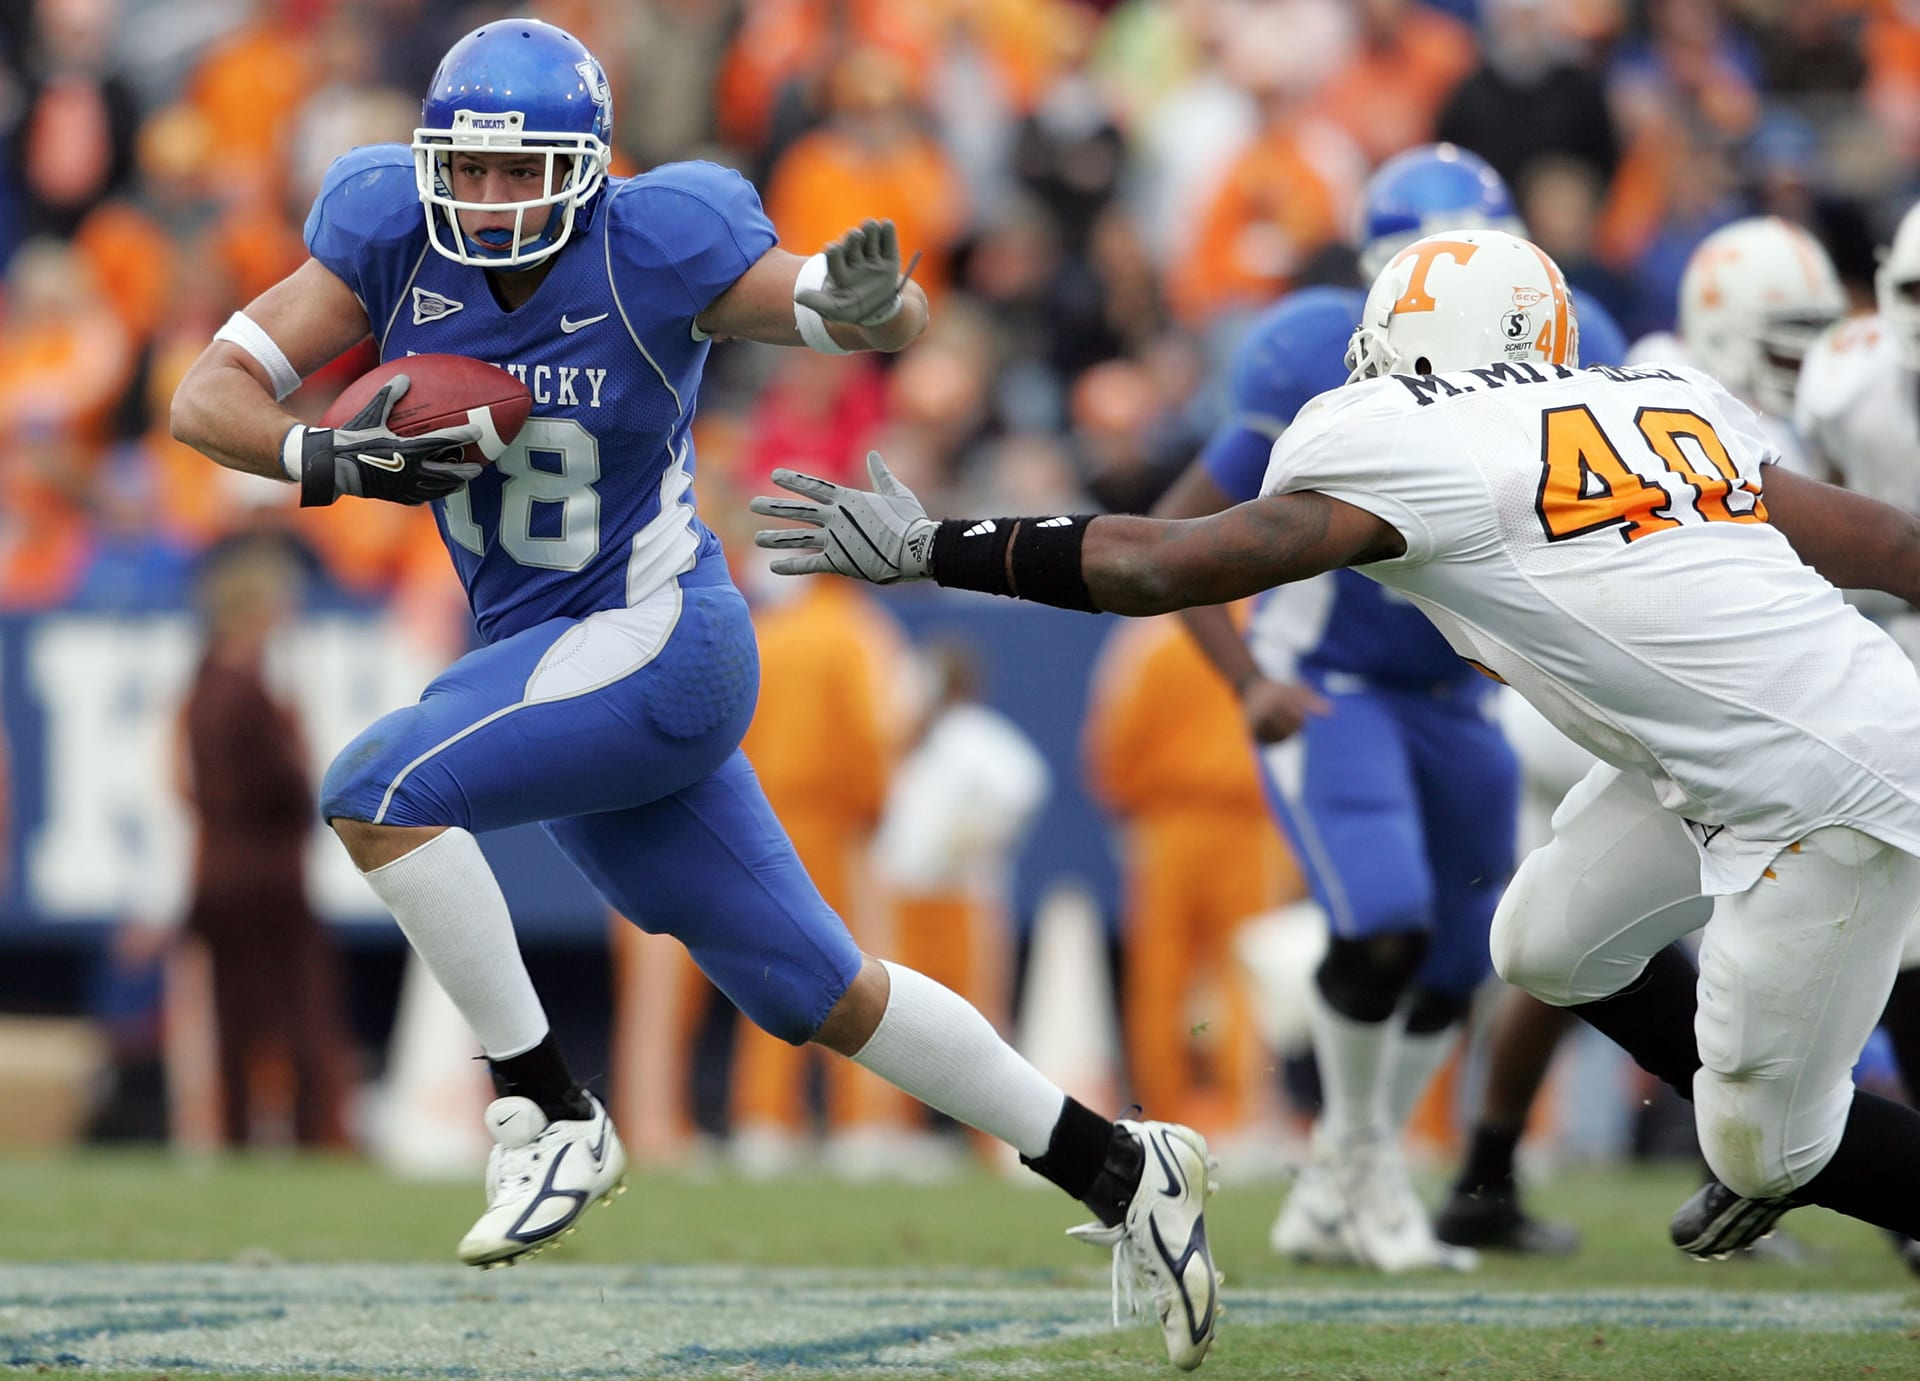 LEXINGTON, KY - NOVEMBER 26: Jacob Tamme #18 of the Kentucky Wildcats runs with the ball after a reception while defended by Marvin Mitchell #40 of the Tennessee Volunteers on November 26, 2005 at Commonwealth Stadium in Lexington, Kentucky. Tennessee won 27-8. (Photo by Andy Lyons/Getty Images)